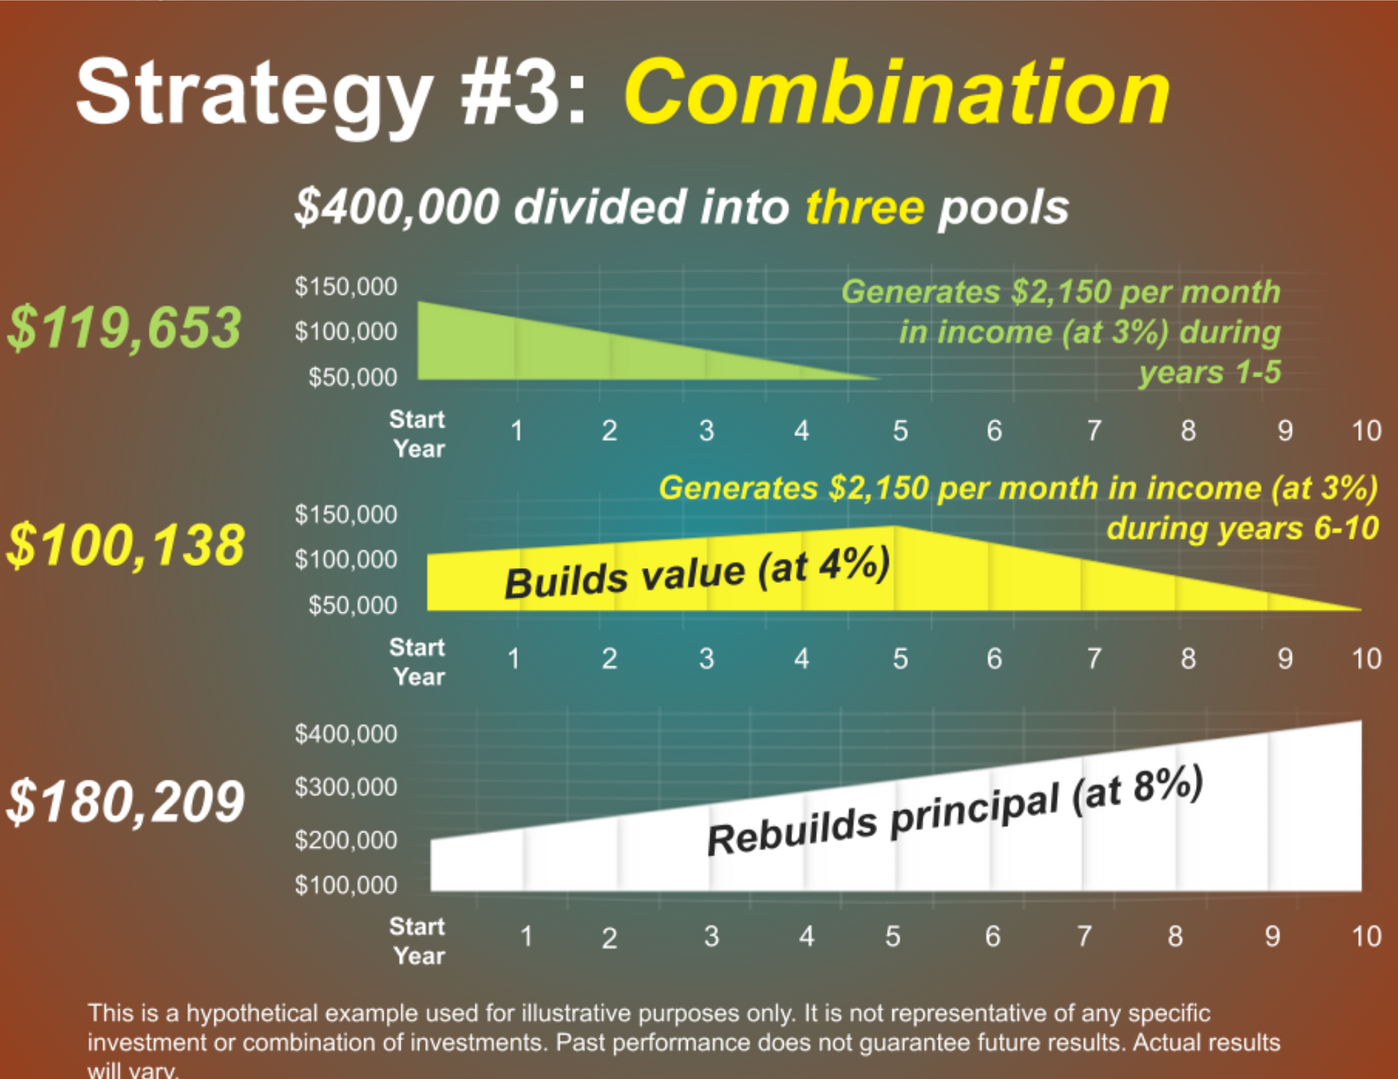 Another, somewhat more complex and aggressive strategy, involves dividing your money into three pools.   The first pool is dedicated to income.  the second to safety. and the third to growth. This shifts most investment risk to the third pool. It also means the third pool has the greatest potential for growth.   Retirees gradually spend down the first two relatively conservative pools. giving the third more time to grow. In this hypothetical example, the first pool is invested in an immediate fixed annuity. and would generate $2,150 per month in income during years 1 through 5. The second pool is invested in conservative investments, generating an average annual return of 4%.   Its objective is to replace the original five-year immediate annuity. During years 6 through 10, the second pool also would generate $2,150 per month in income. At the same time, the third pool is invested for growth to take advantage of potentially higher returns.   Keep in mind that with higher potential returns, comes an increased level of investment risk. If the strategy is successful, the investment would rebuild the $400,000 principal. and the process could start over again. In contrast to the split annuity strategy, this approach depends on relatively aggressive investment of the third pool to succeed.   You should consider carefully whether aggressive investing fits with your tolerance for investment risk. This is a hypothetical example used for illustrative purposes only. It is not representative of any specific investment or combination of investments. Actual results will vary. The guarantees of an annuity contract depend on the issuing company's claims-paying ability.   Annuities have contract limitations, fees, and charges, including account and administrative fees, underlying investment management fees, mortality and expense fees, and charges for optional benefits. Most annuities have surrender fees that are usually highest if you take out the money in the initial years of the an